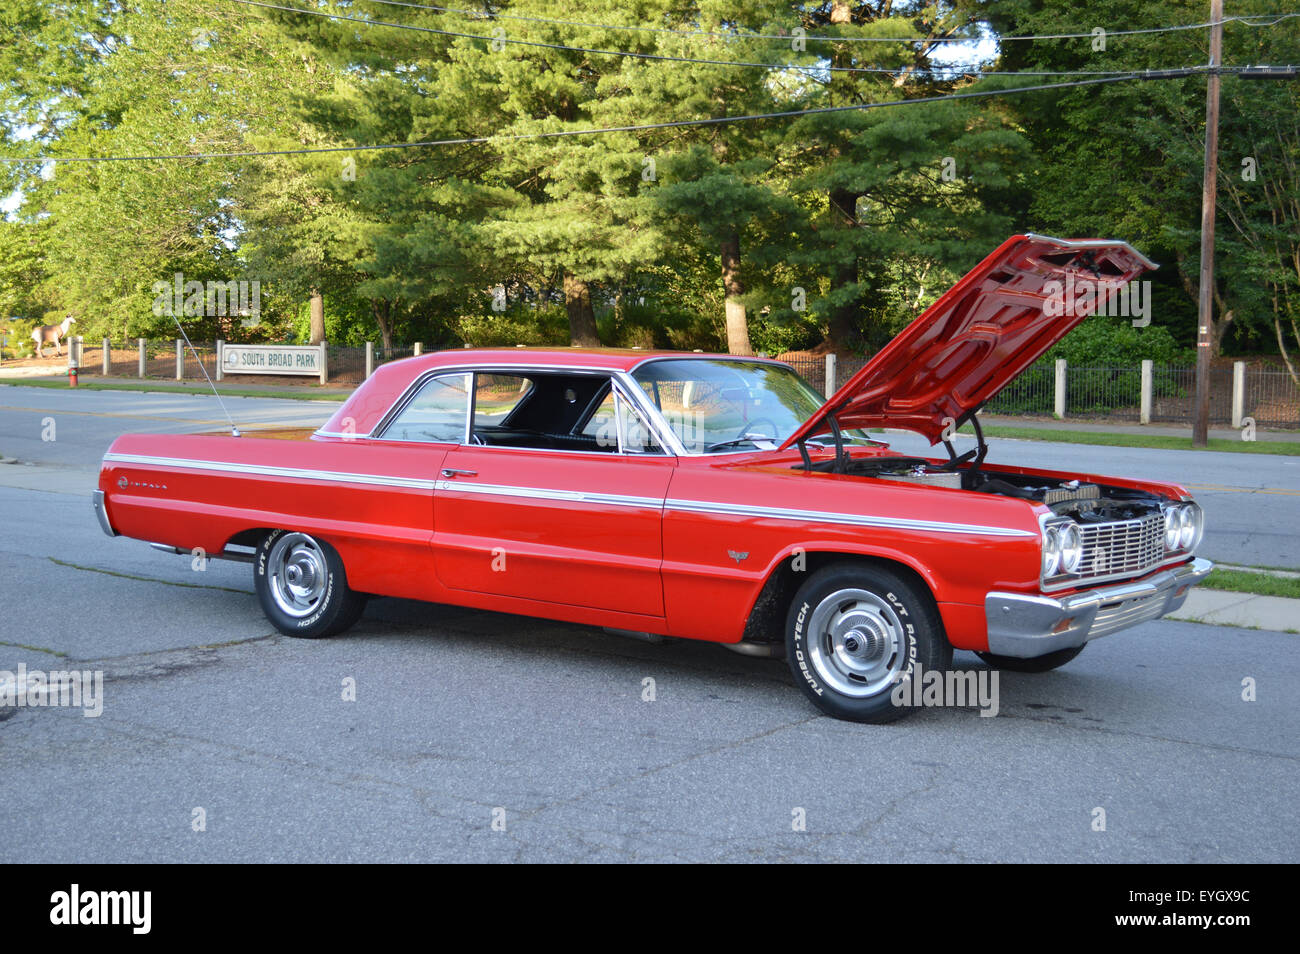 Red Antique Chevy Impala Stock Photos & Red Antique Chevy Impala ...